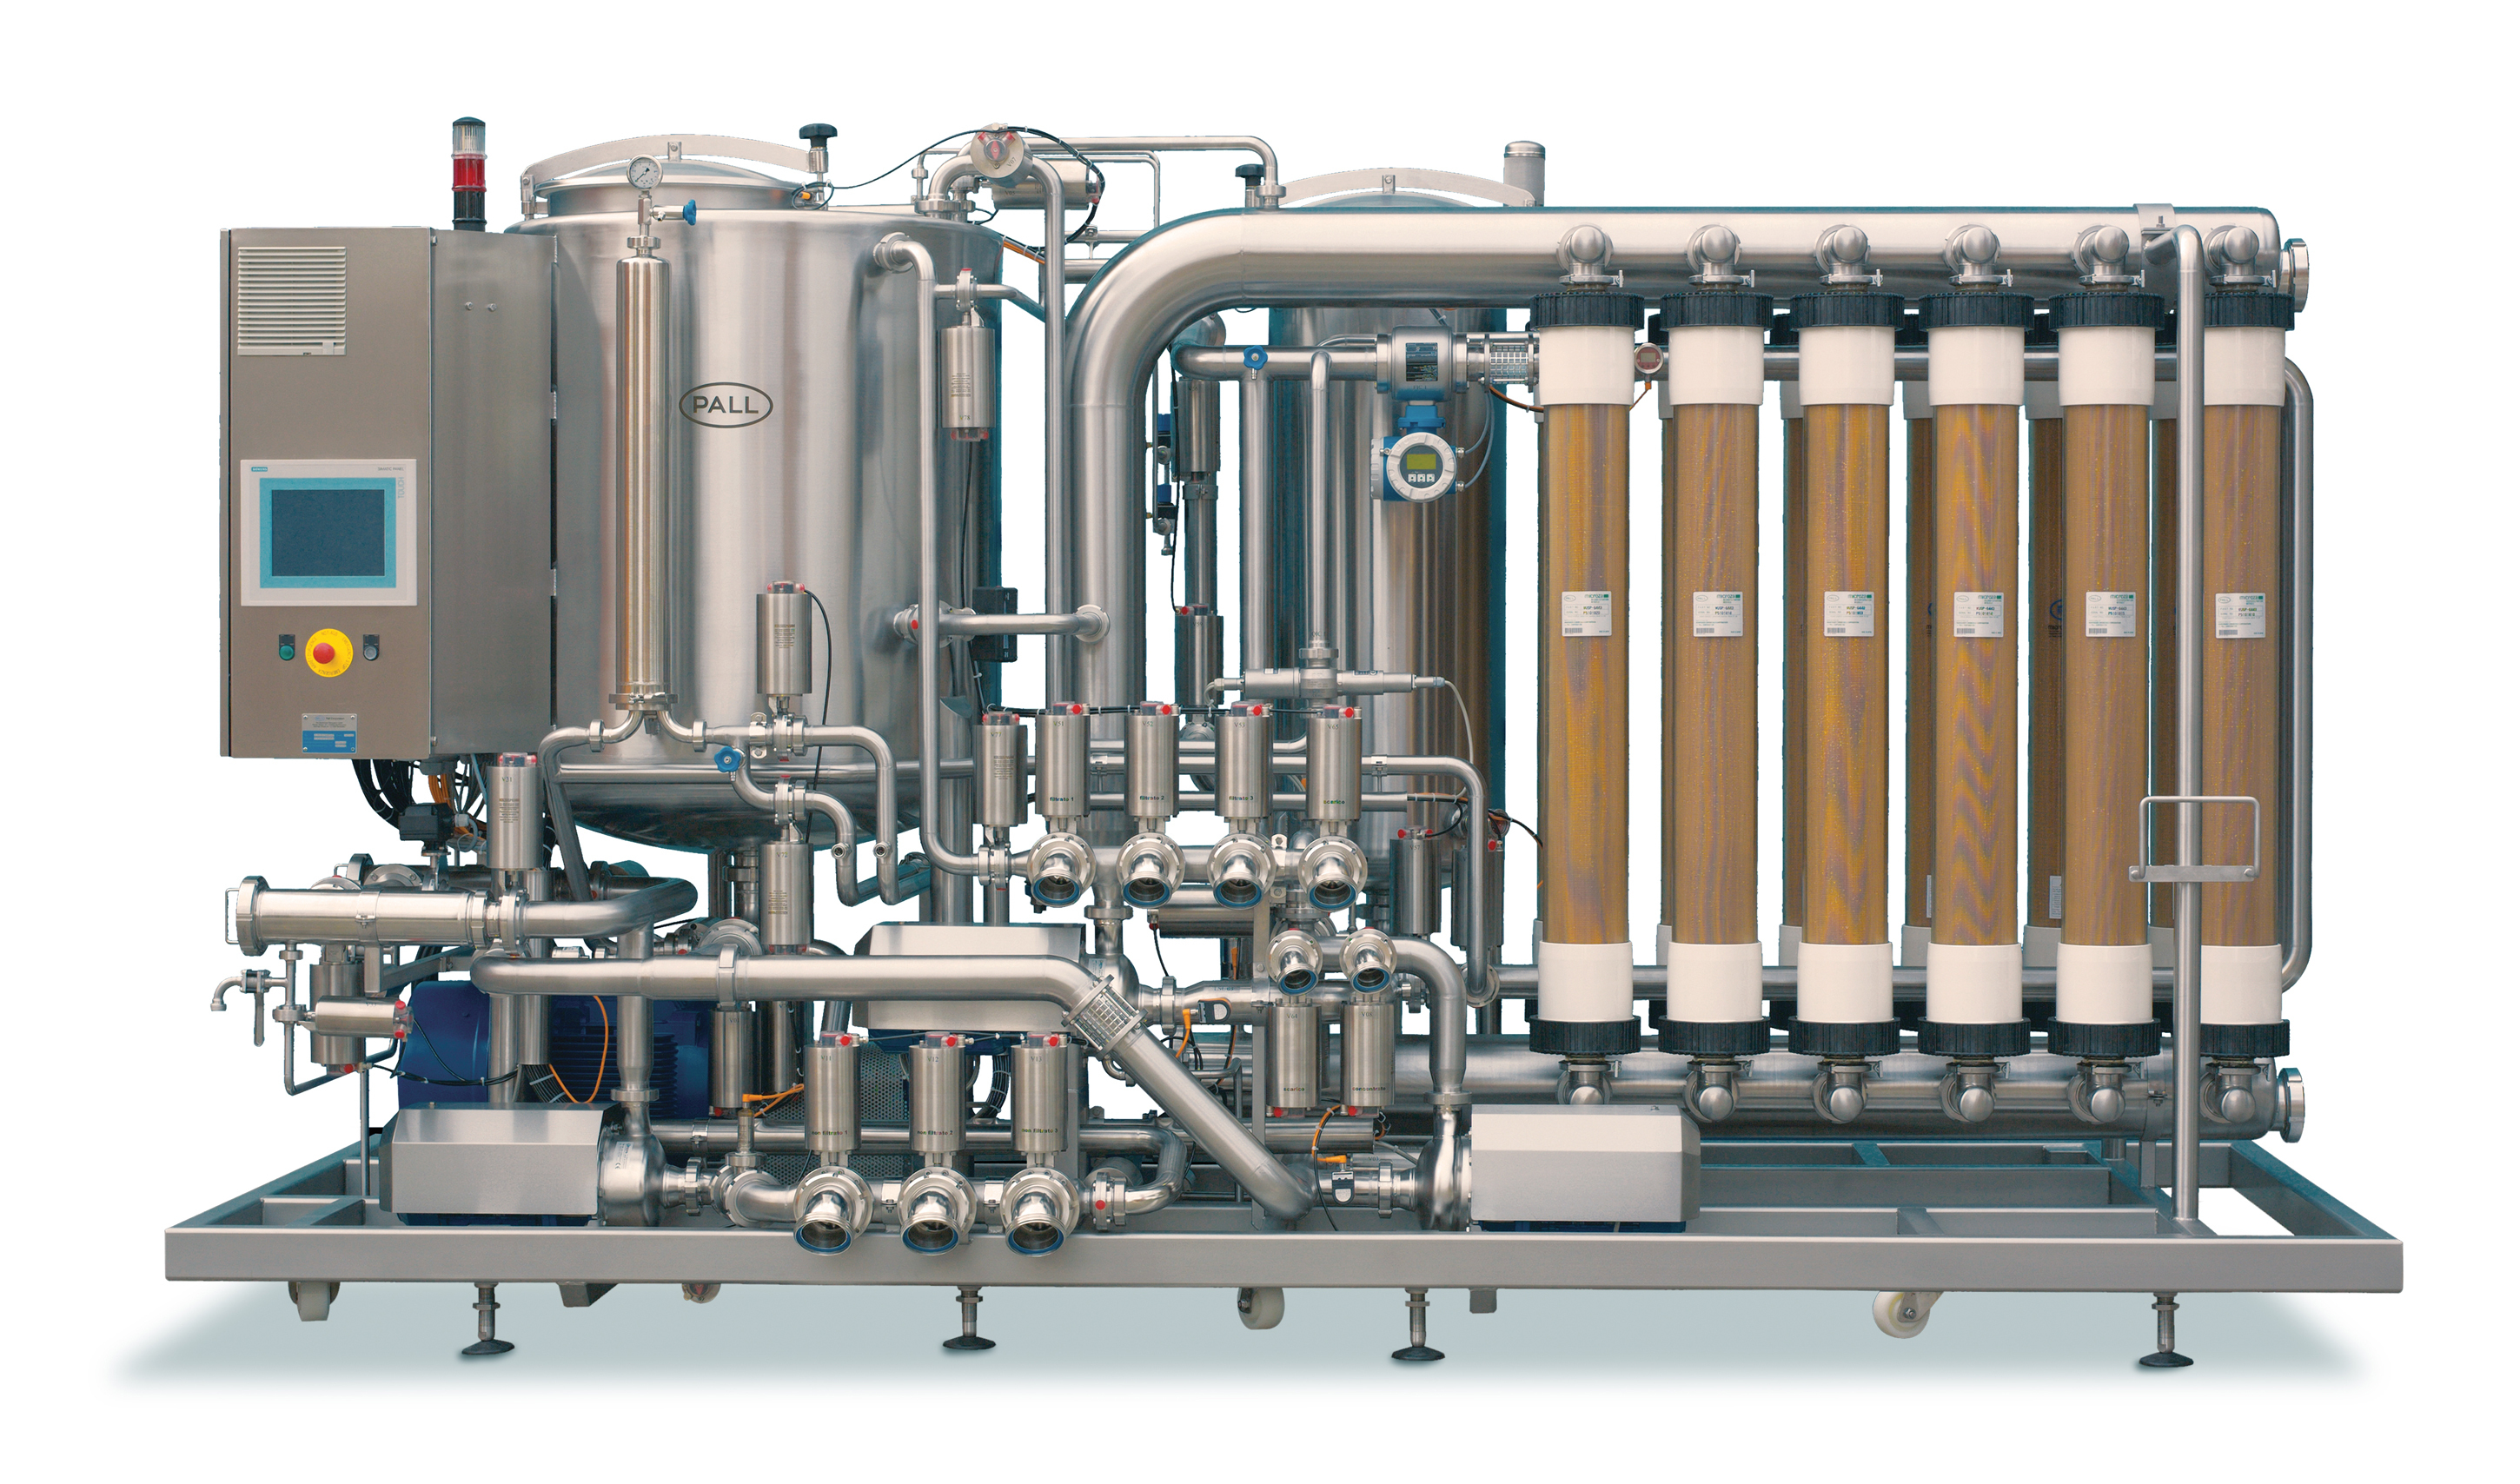 Pall Corp Celebrates Sale Of 1 000th Oenoflow Filtration